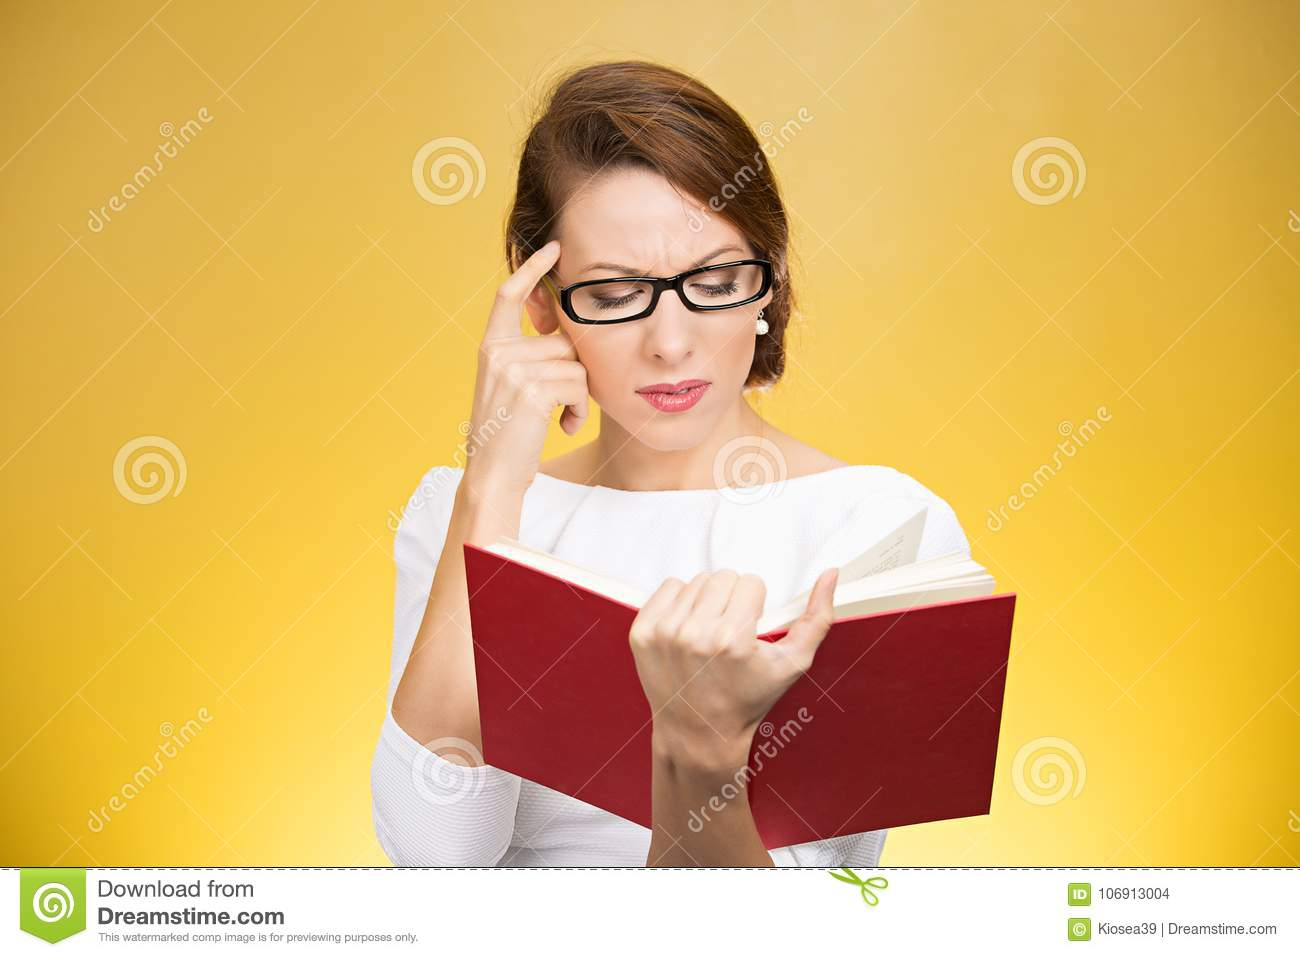 Concentrated woman thinking on book content